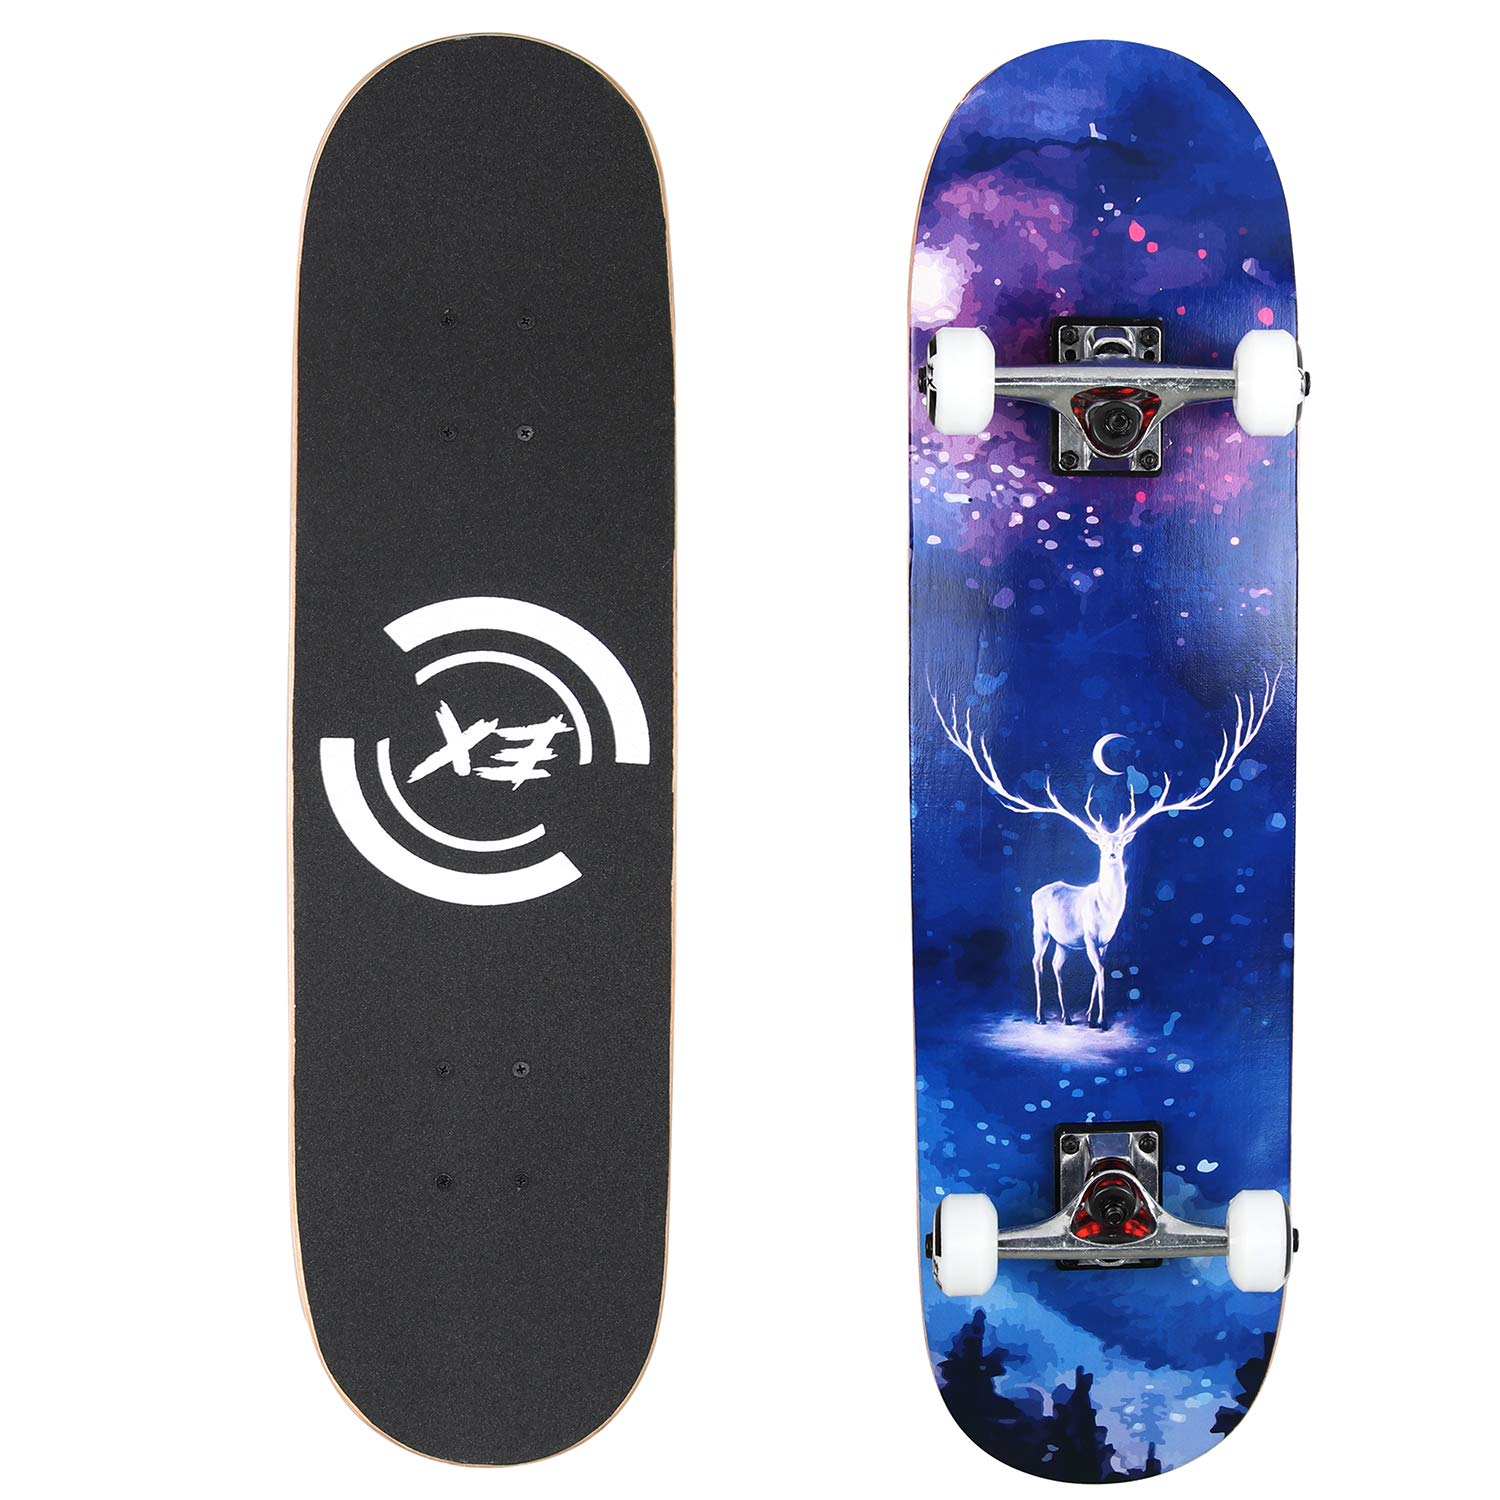 Pro Skateboard 31'' X 8'' Standard Skateboards Cruiser Complete Canadian Maple 8 Layers Double Kick Concave Skate Boards ... (DYS-SKATE-029) by DIYUSI